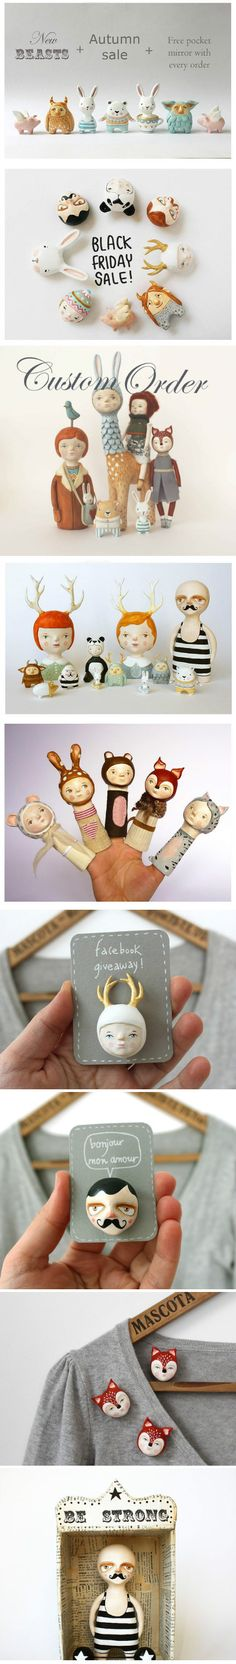 Dolls, brooches, fin